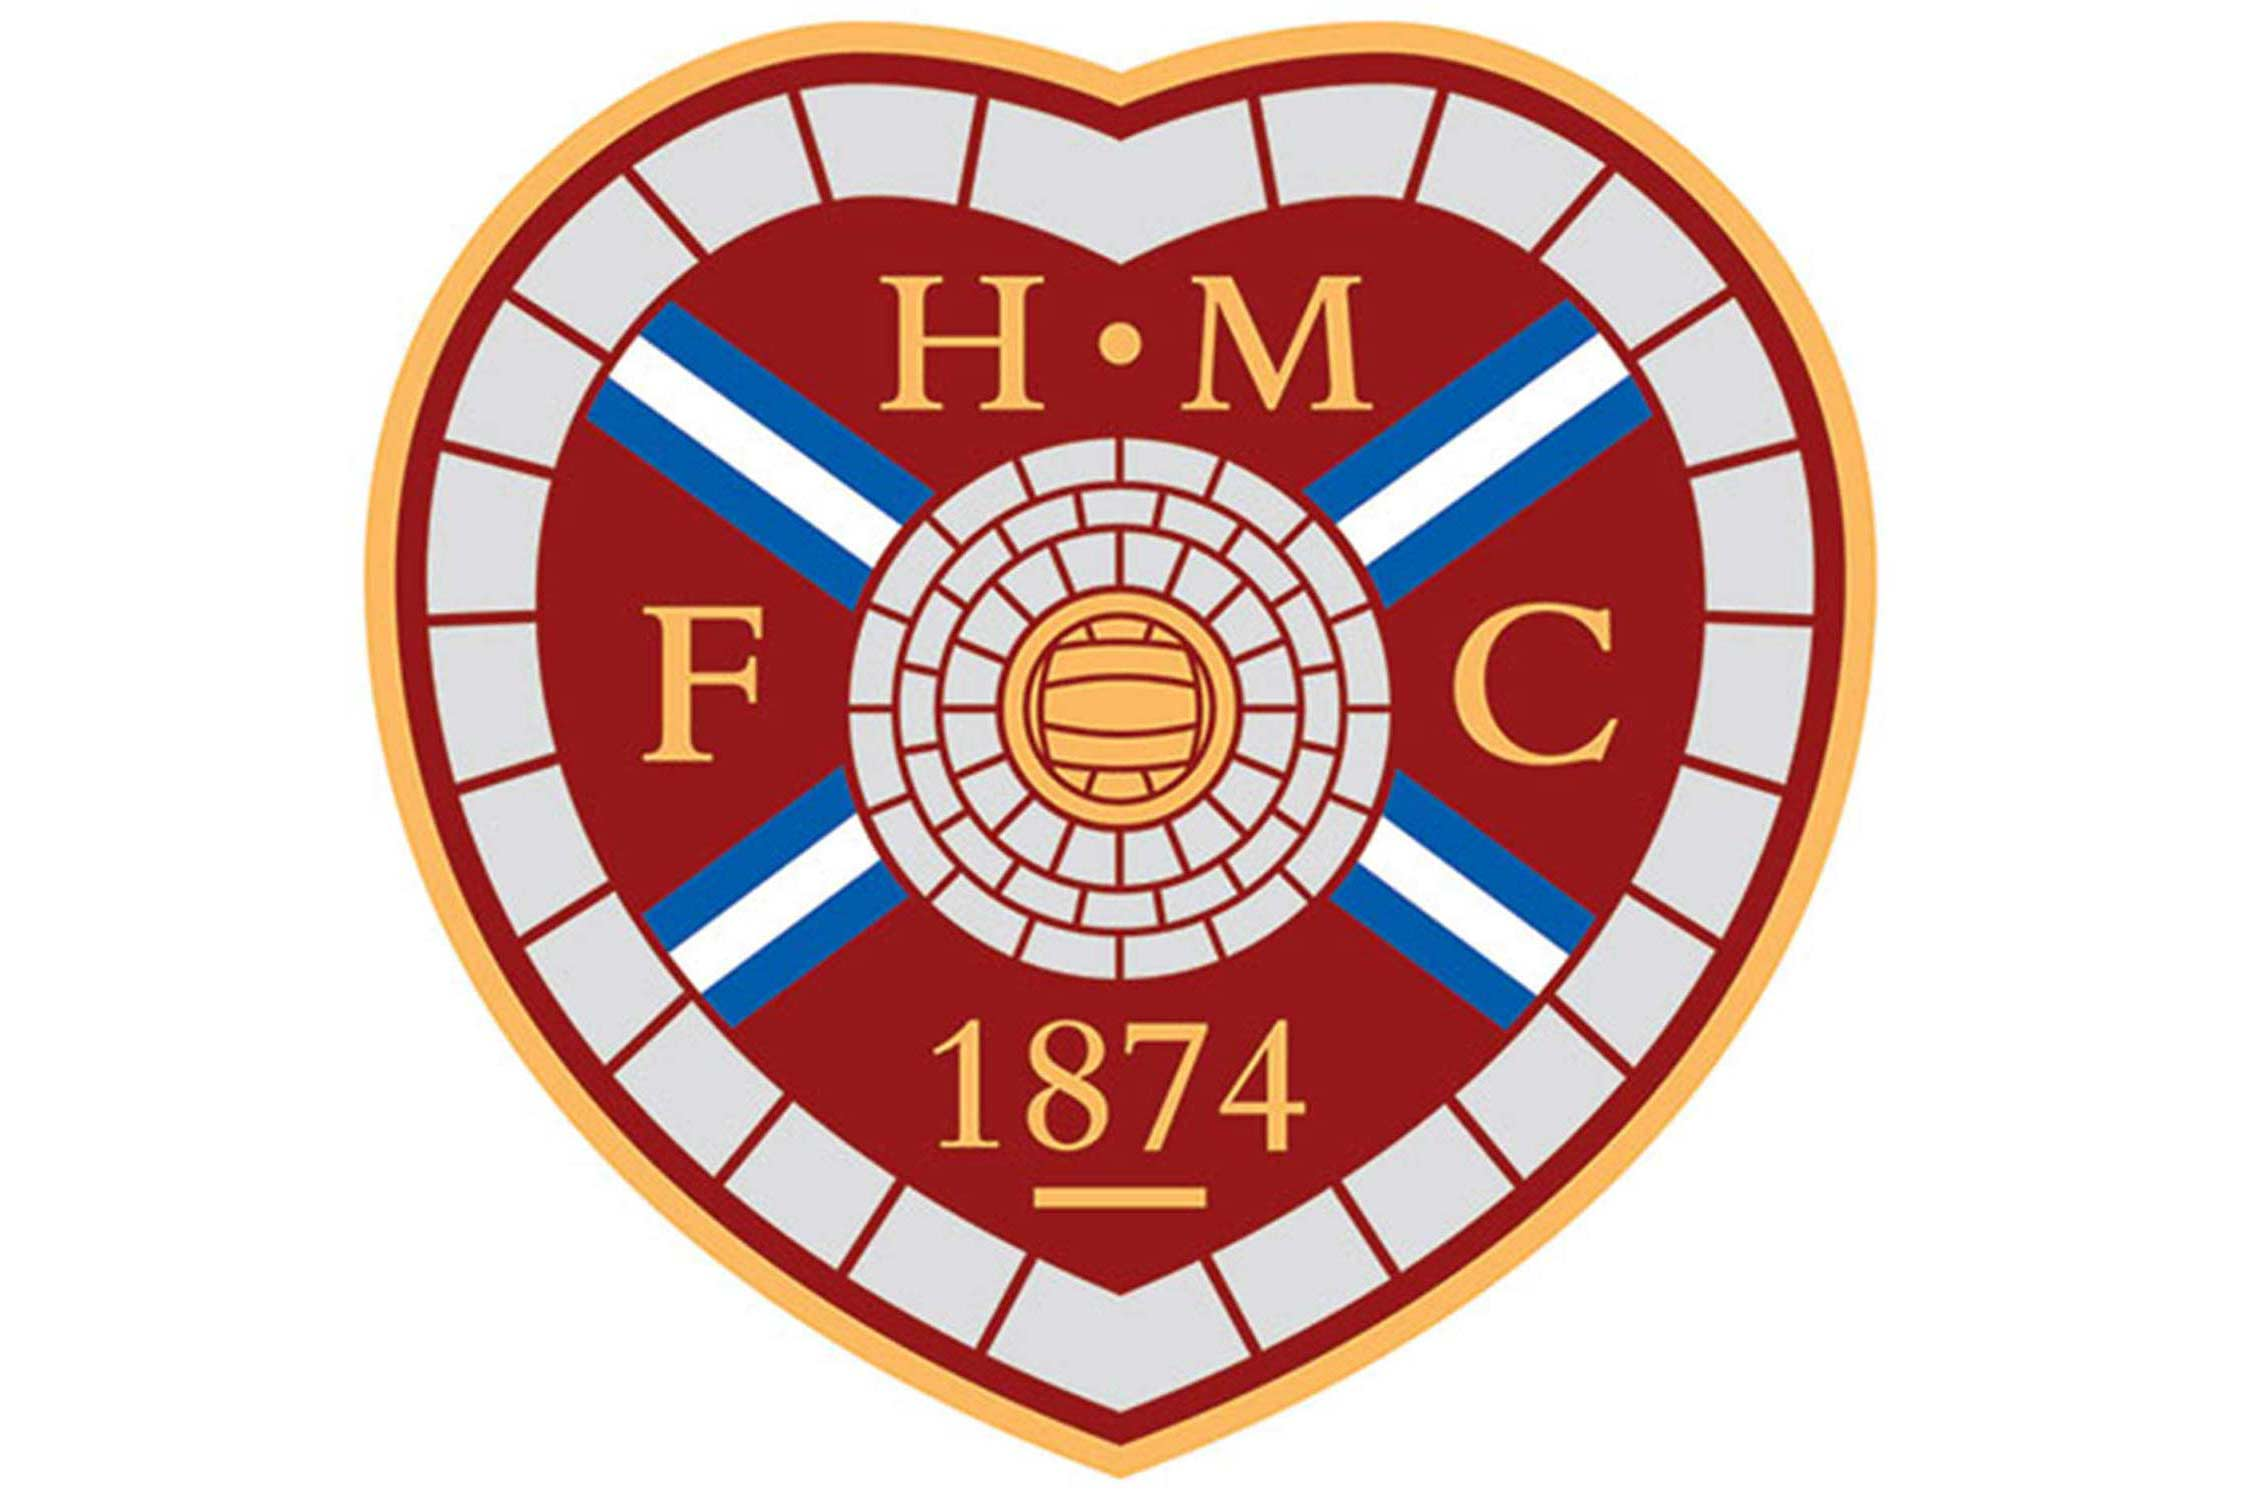 Based in Edinburgh, Heart of Midlothian's crest features bricks around the edge of a familiar heart shape. The bricks are a reference to a mosaic built into the The Royal Mile, a famous walkway in the center of Edinburgh. The blue cross in the center recalls the flag of Scotland.